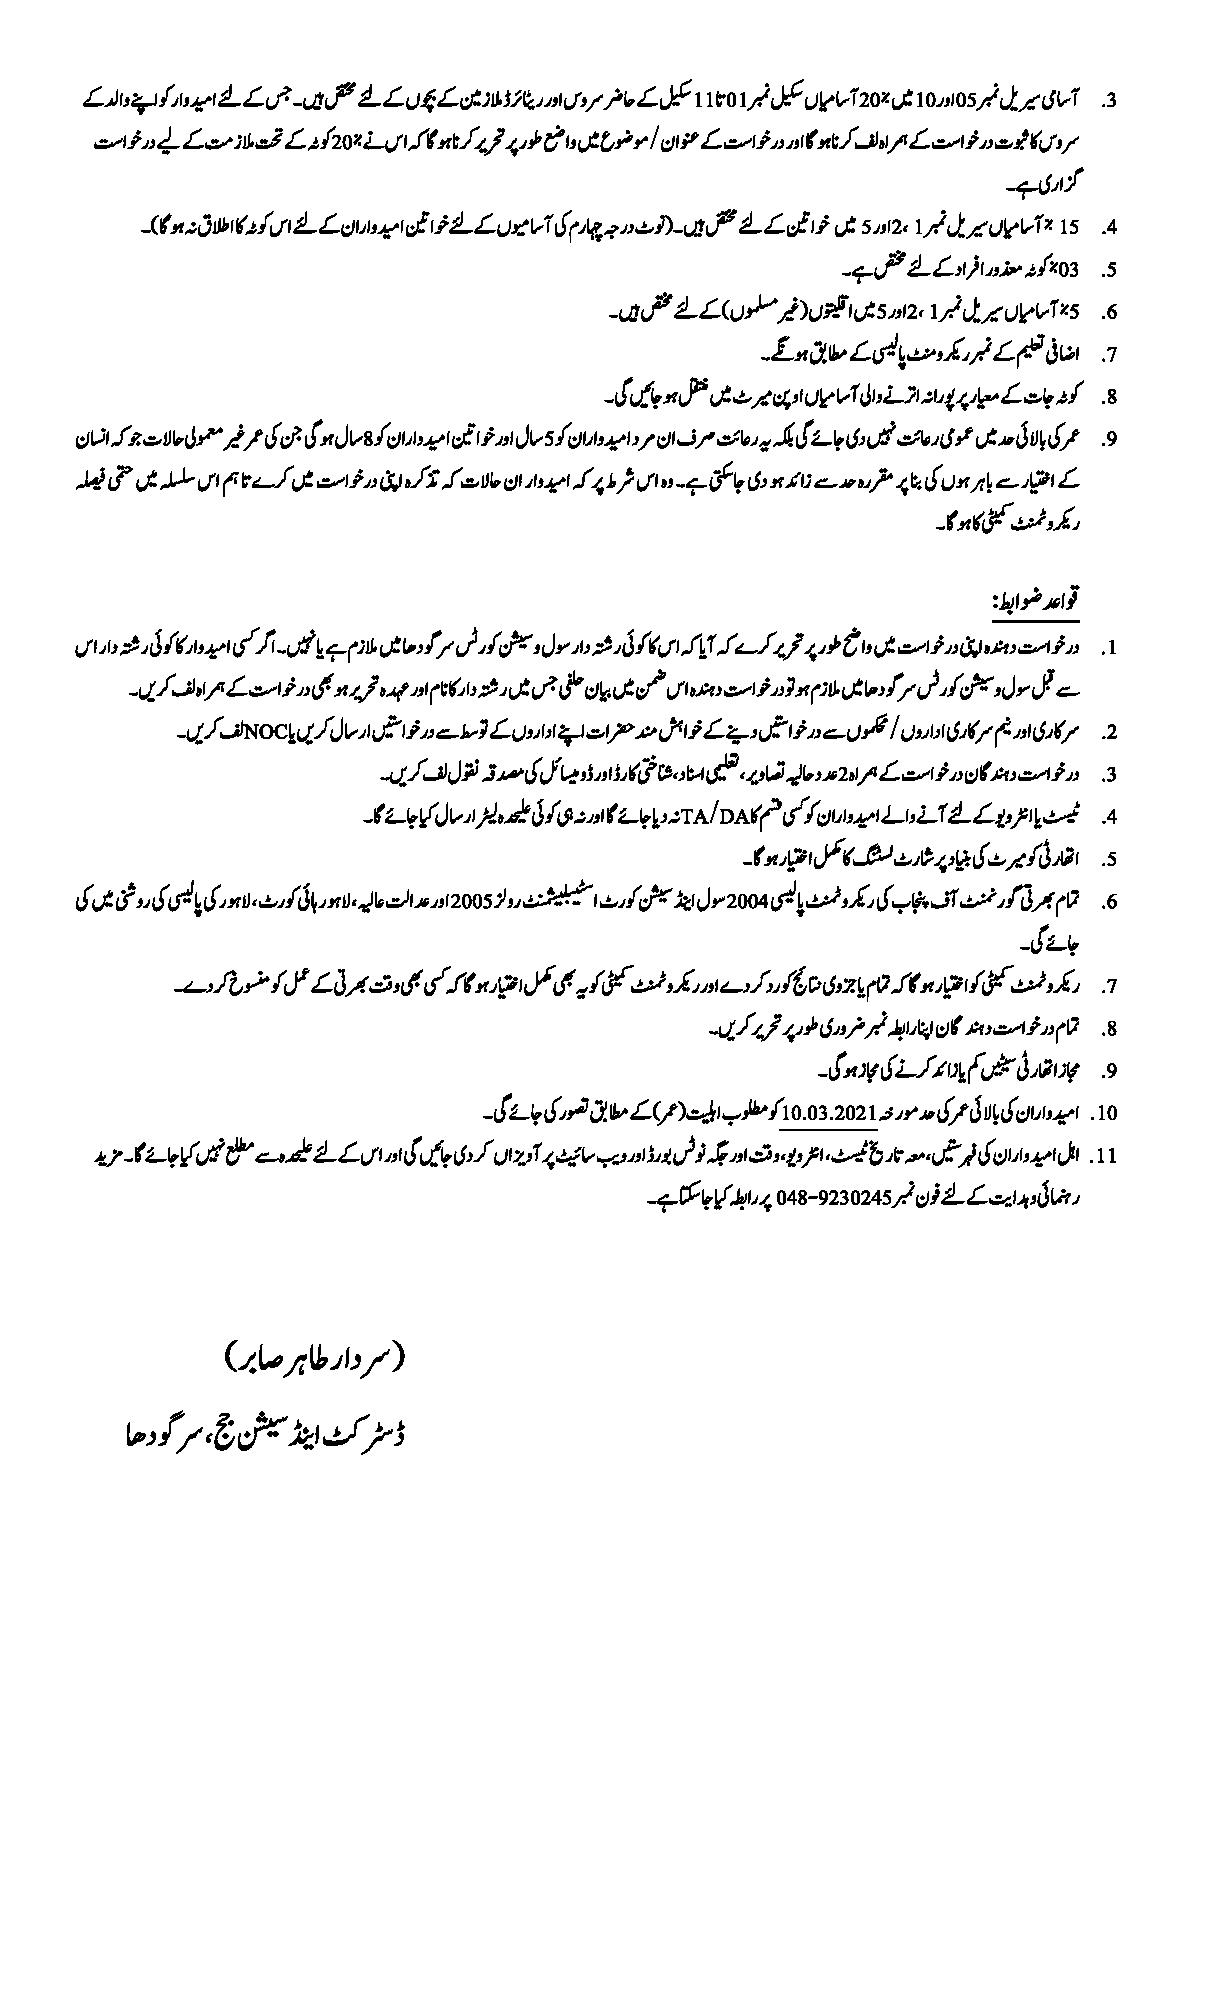 District Session Courts Sargodha Jobs New Government jobs in Punjab